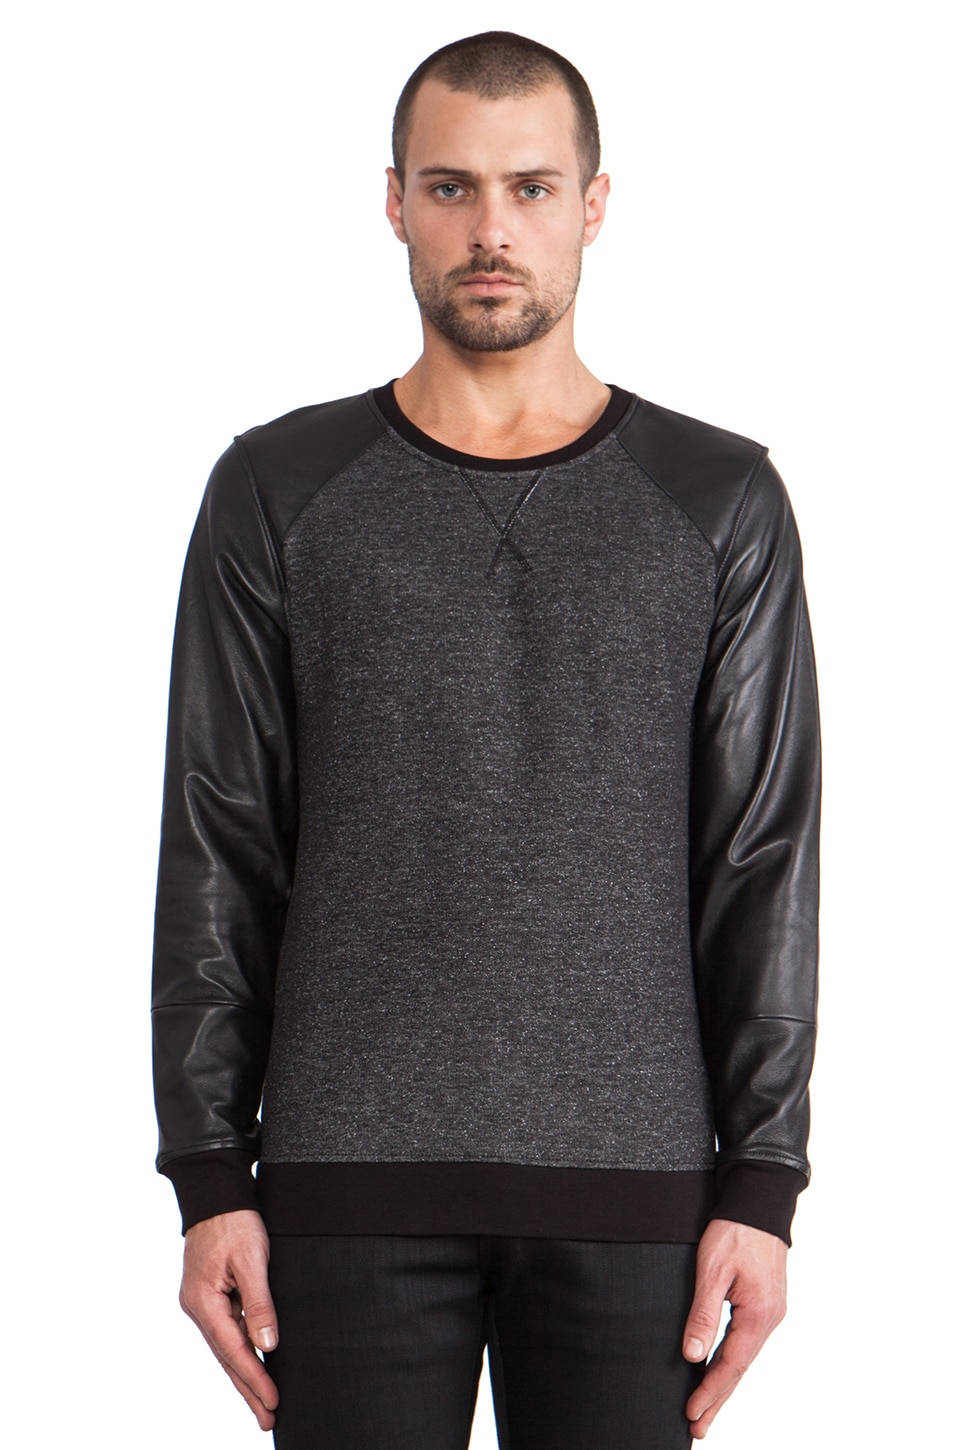 lot78 Leather Sleeve Sweatshirt in Black